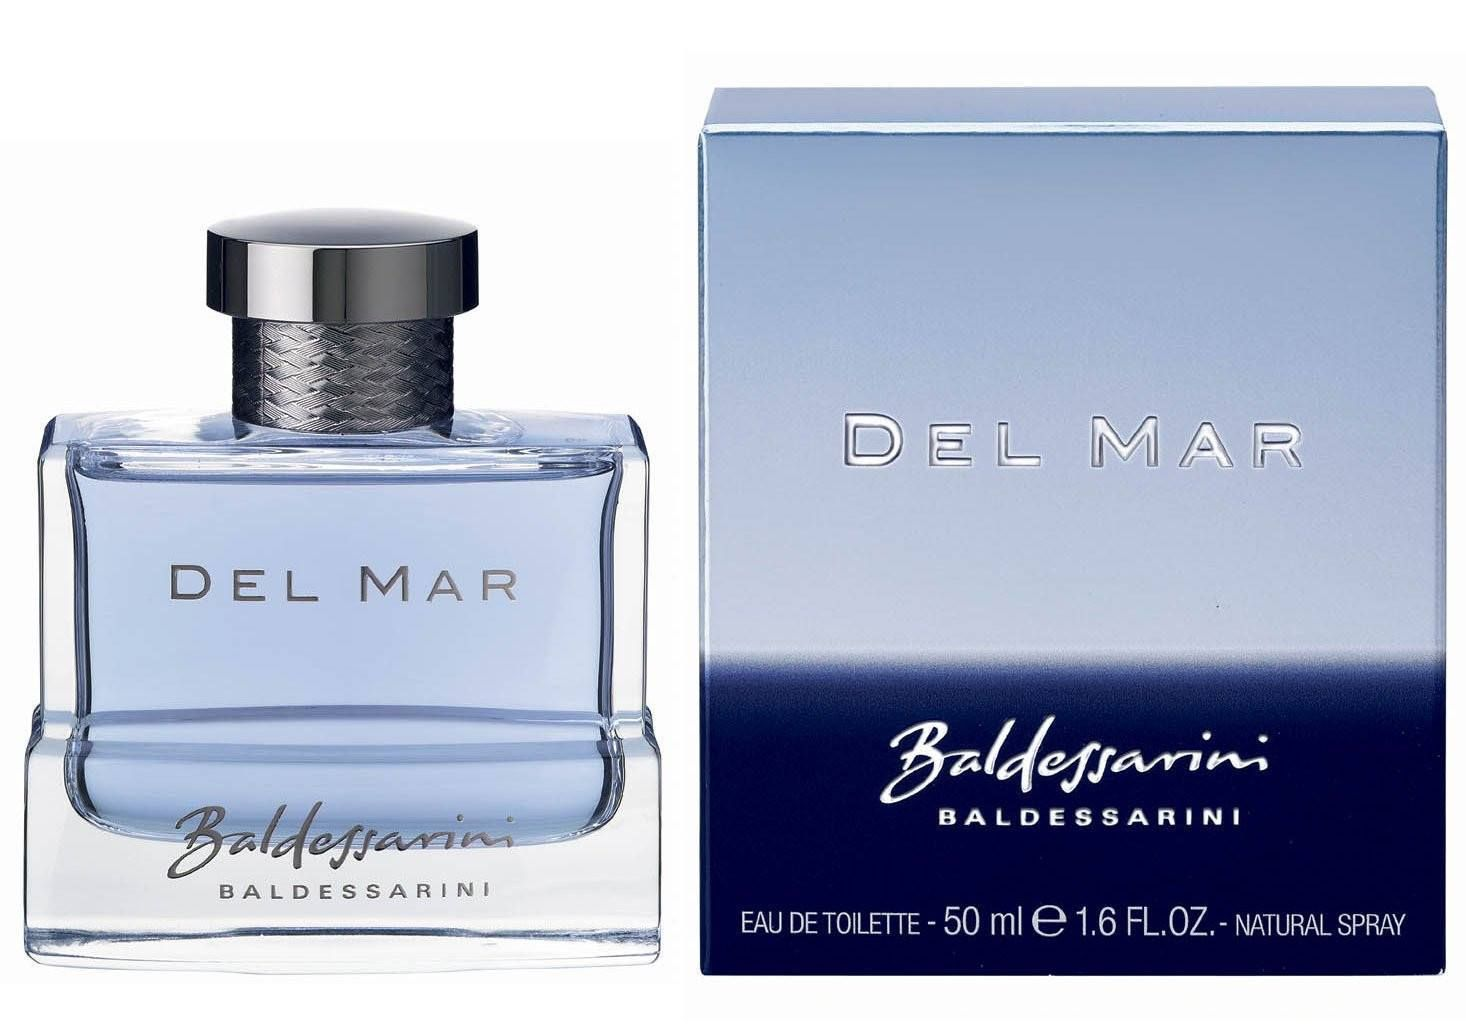 Baldessarini Del Mar 3.0 oz EDT for men